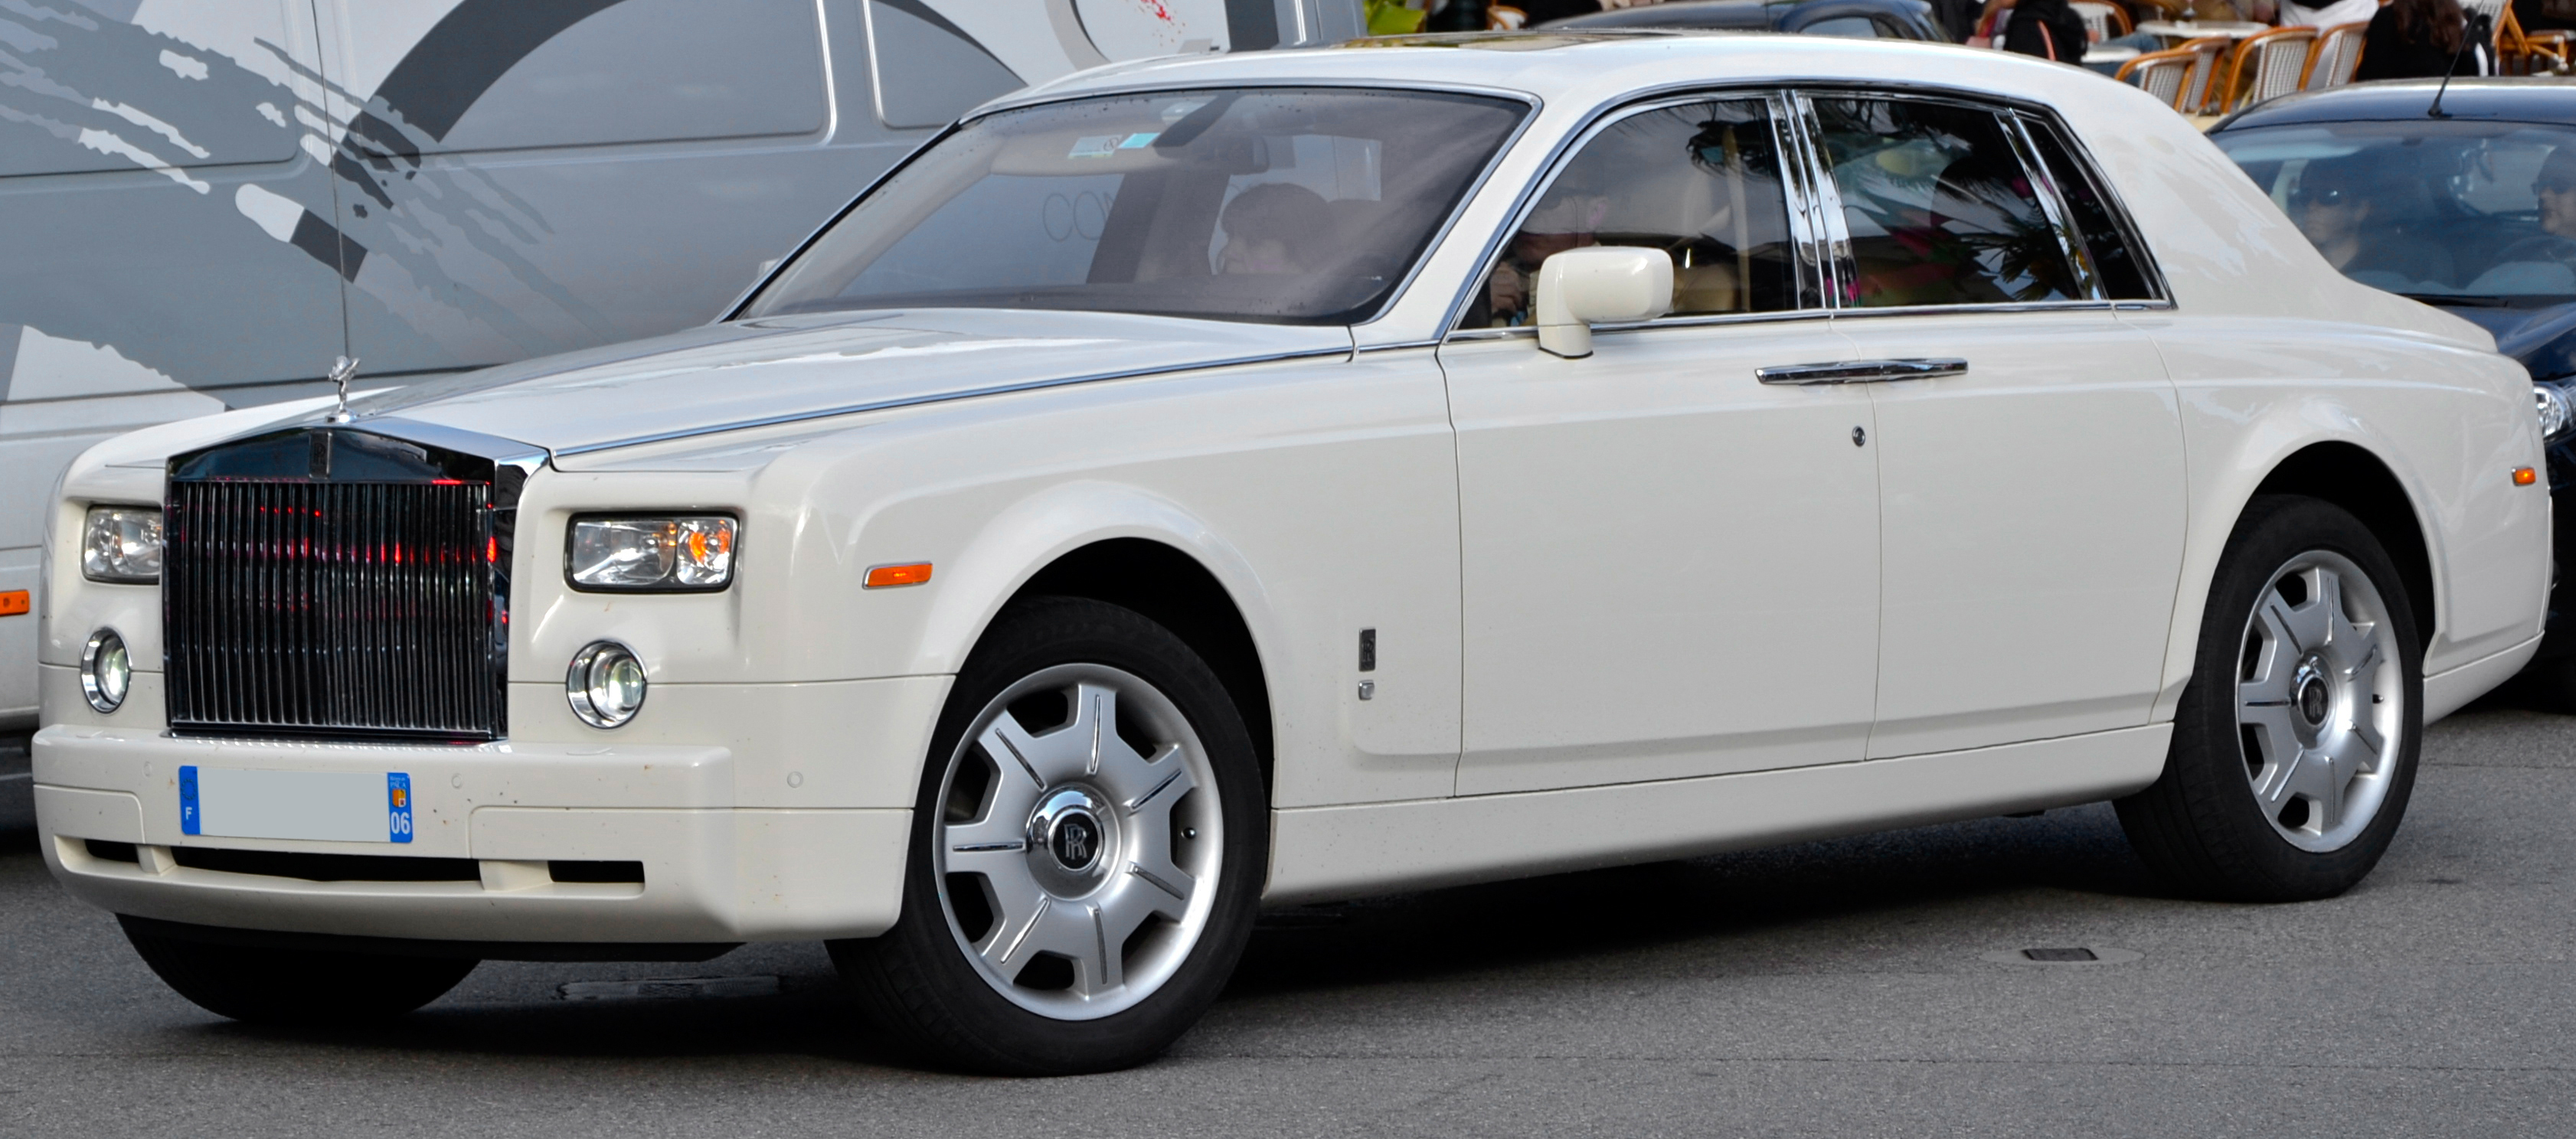 Phantom Serenity Rolls Royce Phantom Vii Wikipedia